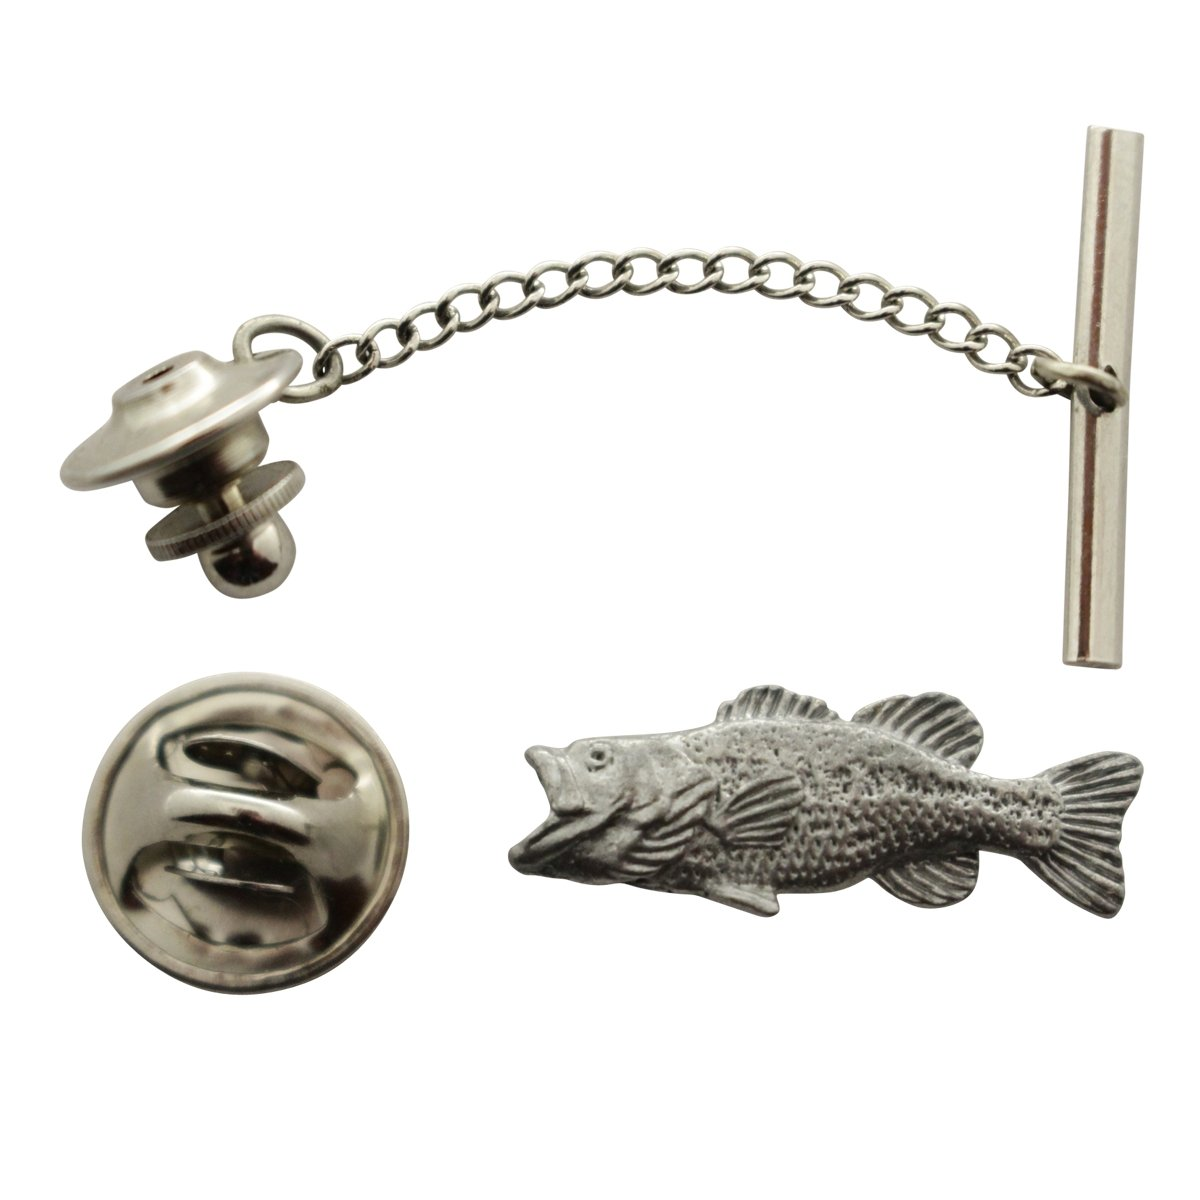 Largemouth Bass Tie Tack ~ Antiqued Pewter ~ Tie Tack or Pin ~ Sarah's Treats & Treasures